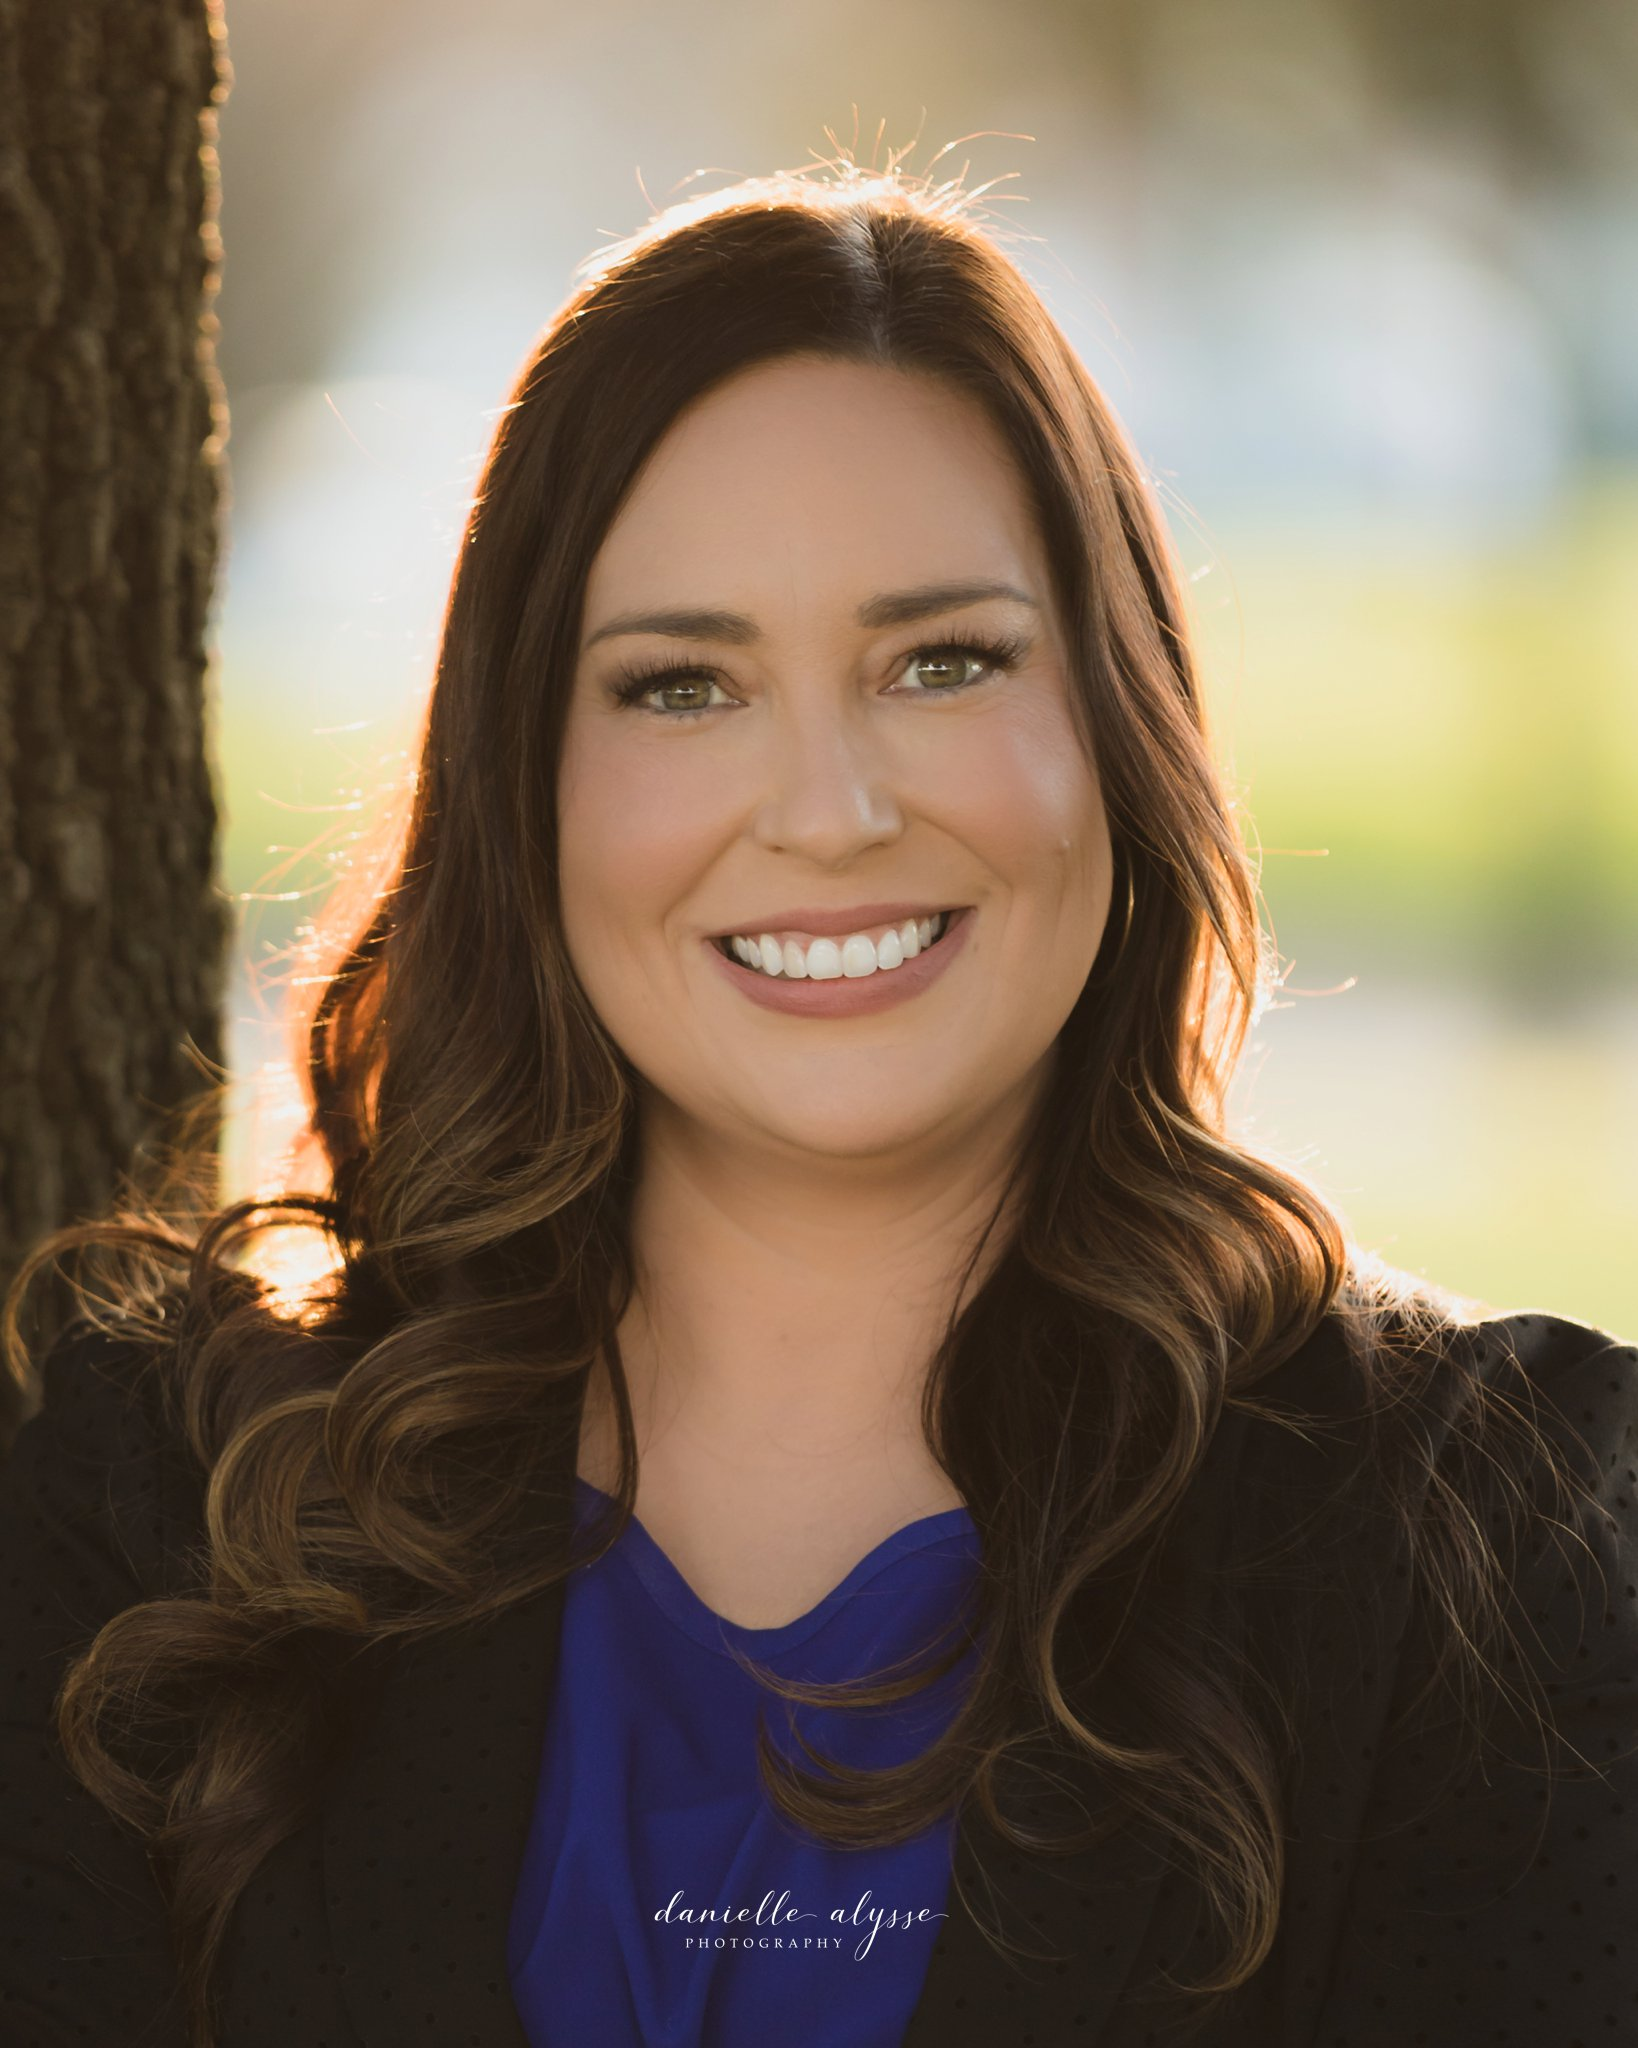 190207_corporate_headshot_christina_elk_grove_danielle_alysse_photography_2_WEB.jpg